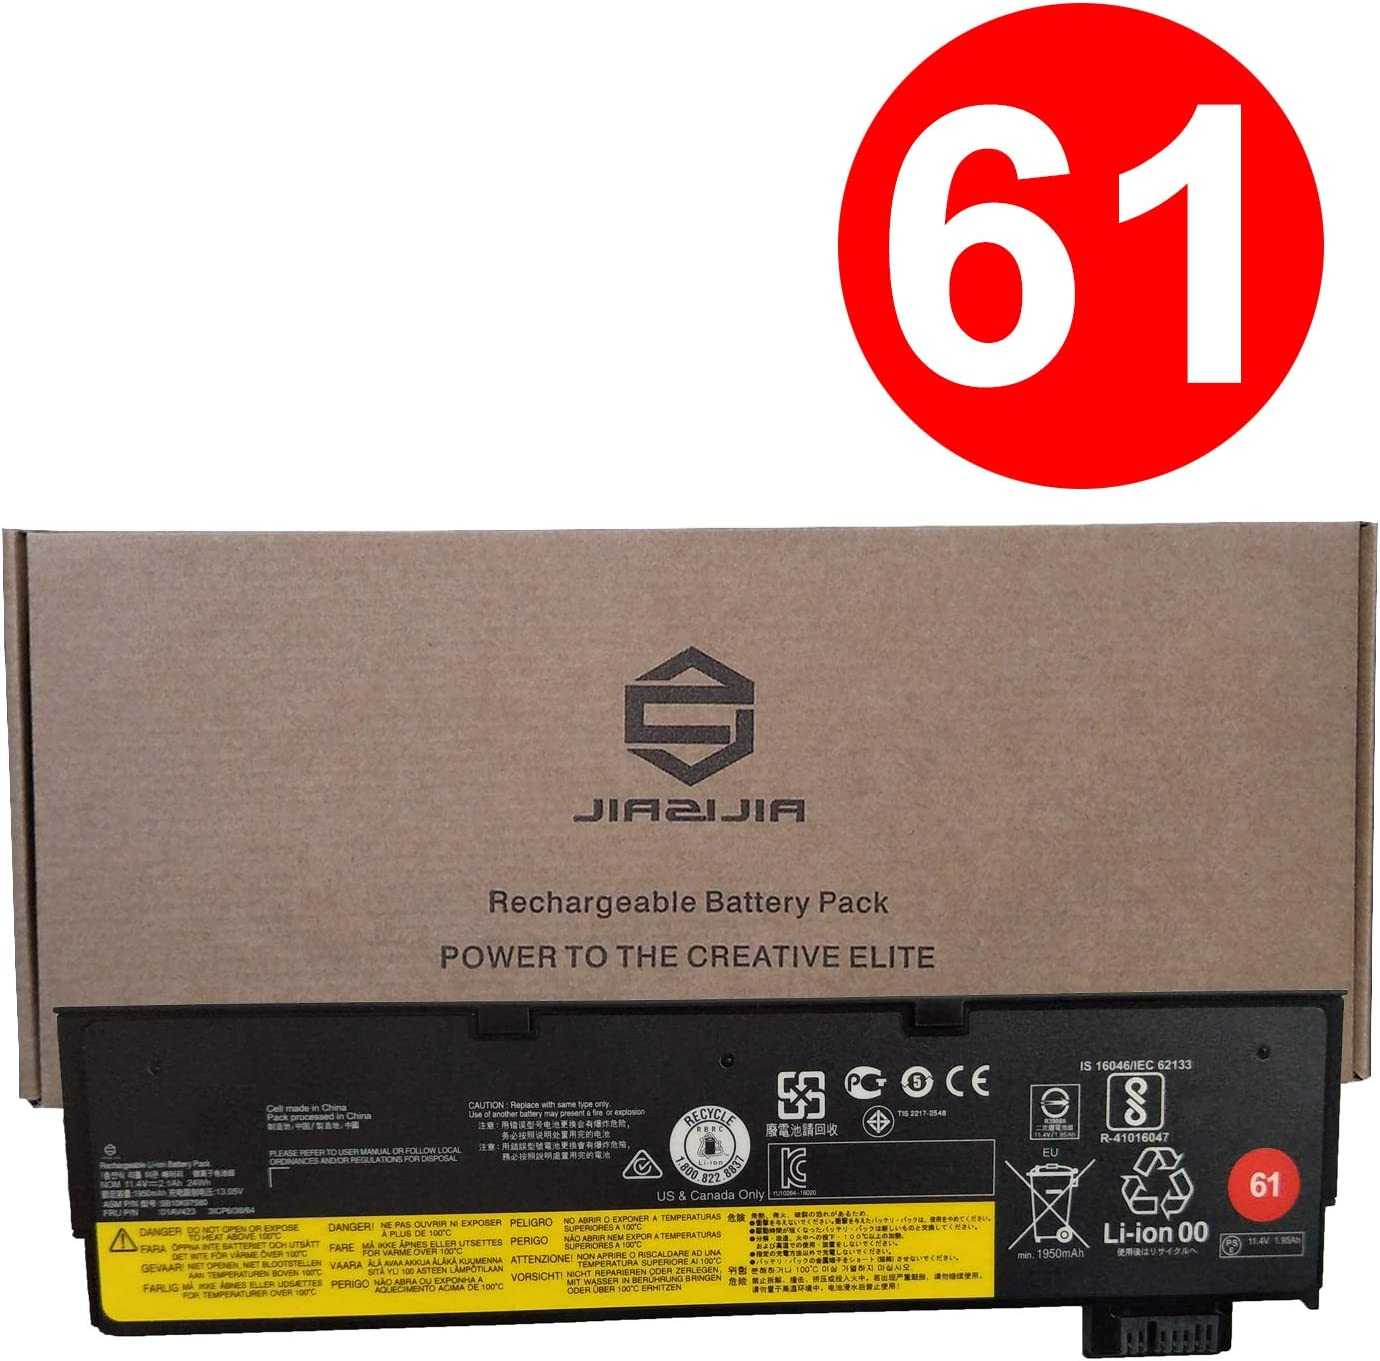 JIAZIJIA SB10K97580 Laptop Battery Replacement for Lenovo ThinkPad T470 T480 A475 A485 T570 T580 P51S P52S Series 01AV423 01AV422 SB10K97579 01AV424 SB10K97581 01AV452 SB10K97597 01AV490 11.4V 24Wh